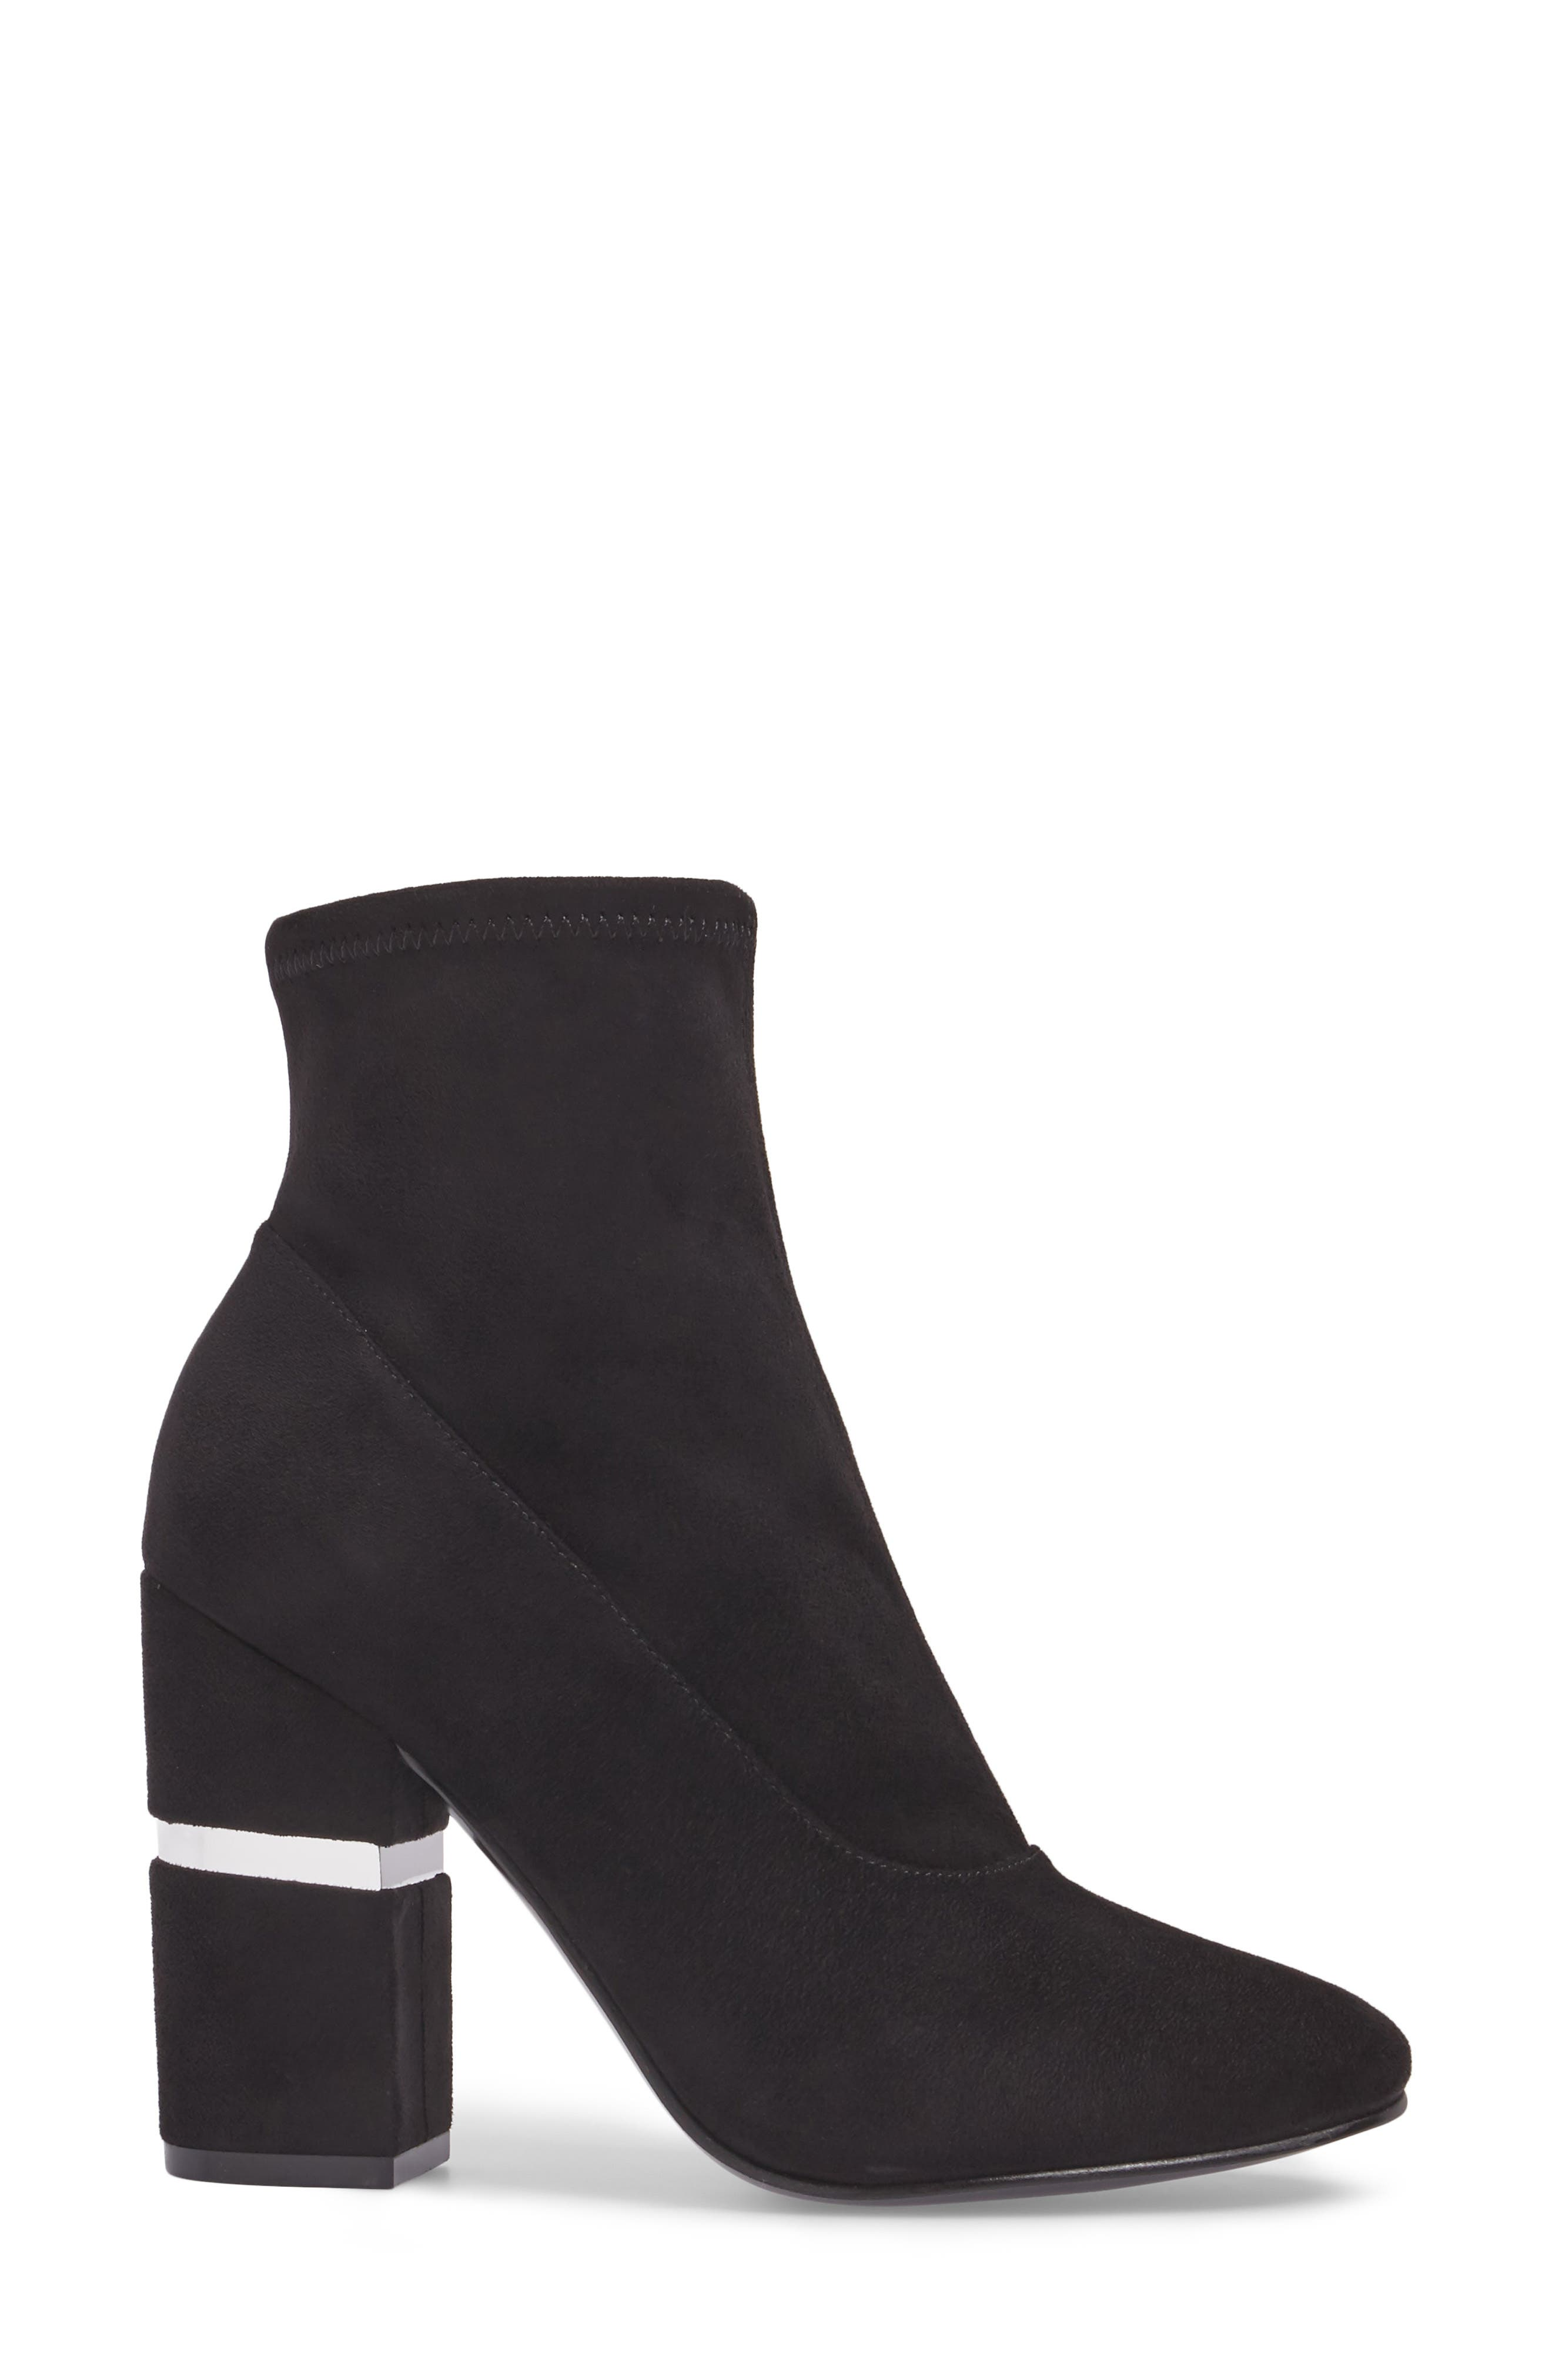 Padda Embellished Stretch Bootie,                             Alternate thumbnail 3, color,                             001